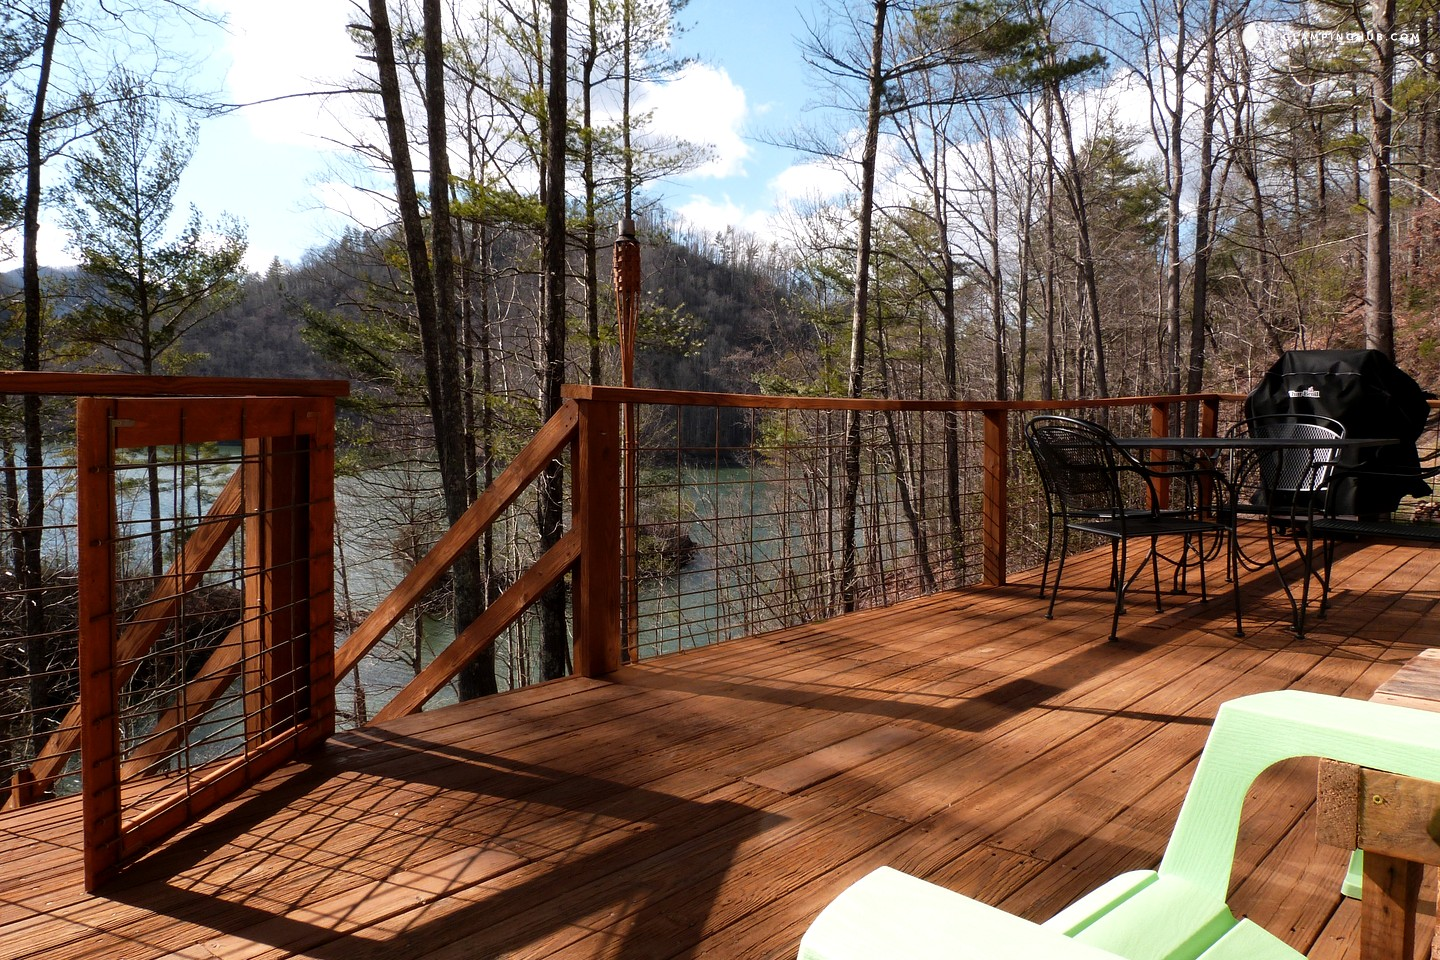 Cabin rental on watauga lake tennessee for Private cabin rentals in tennessee